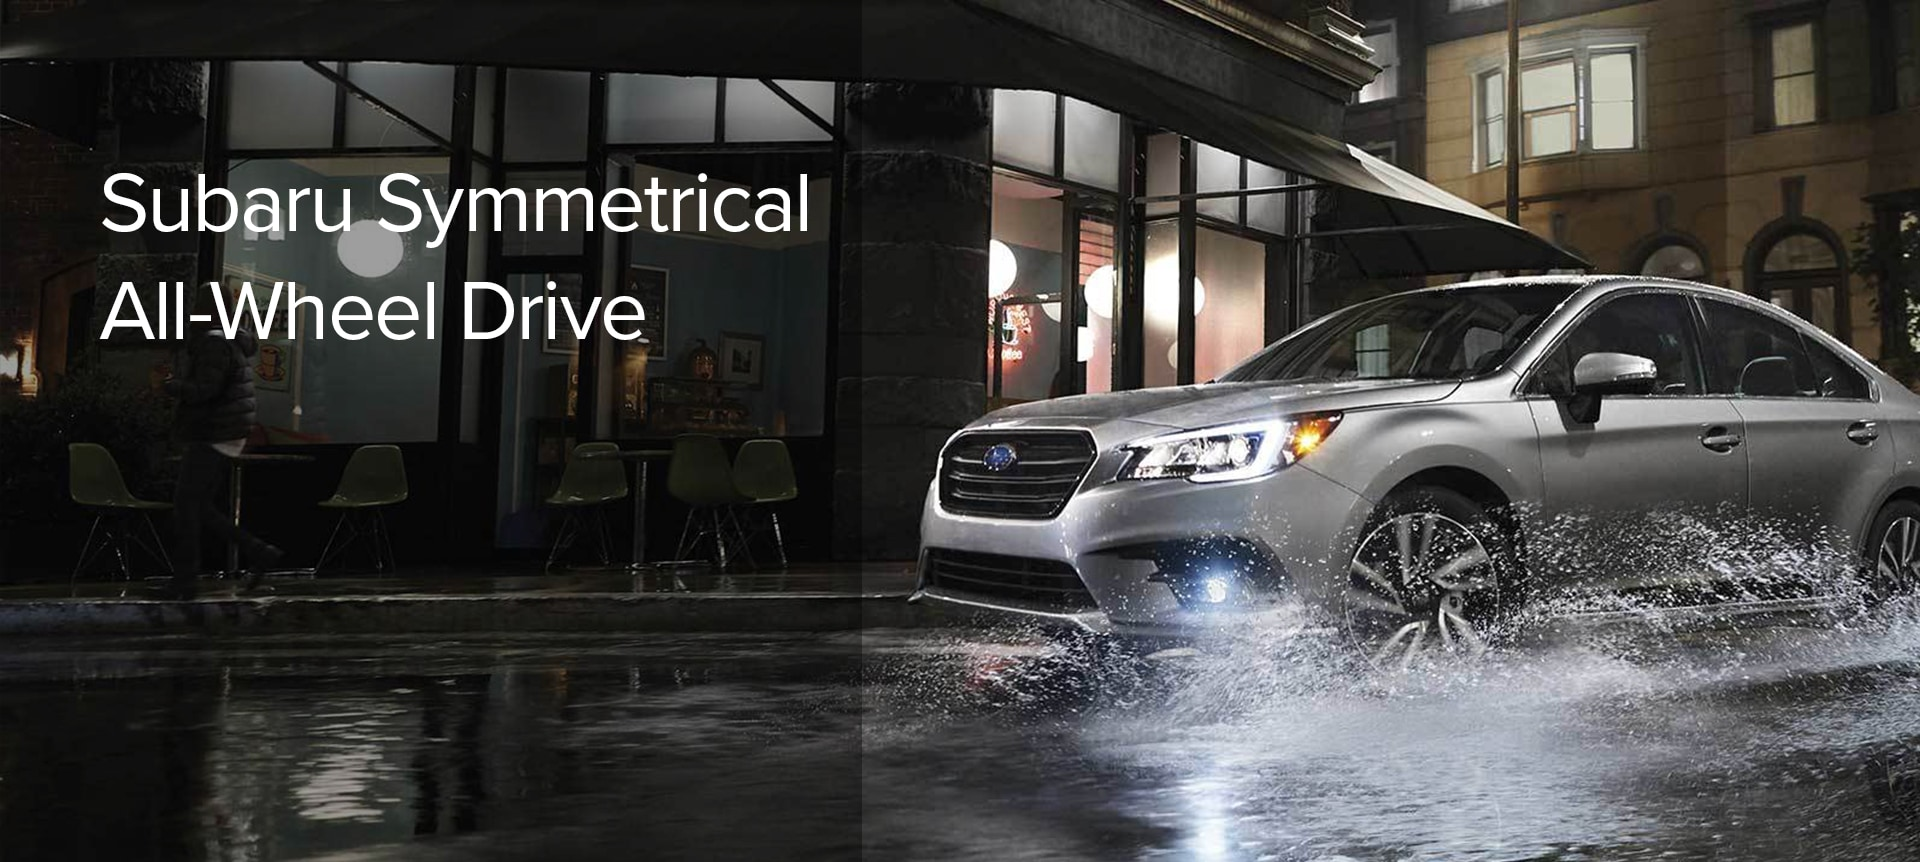 Chicago | Do All Subaru Vehicles Have All-Wheel Drive?